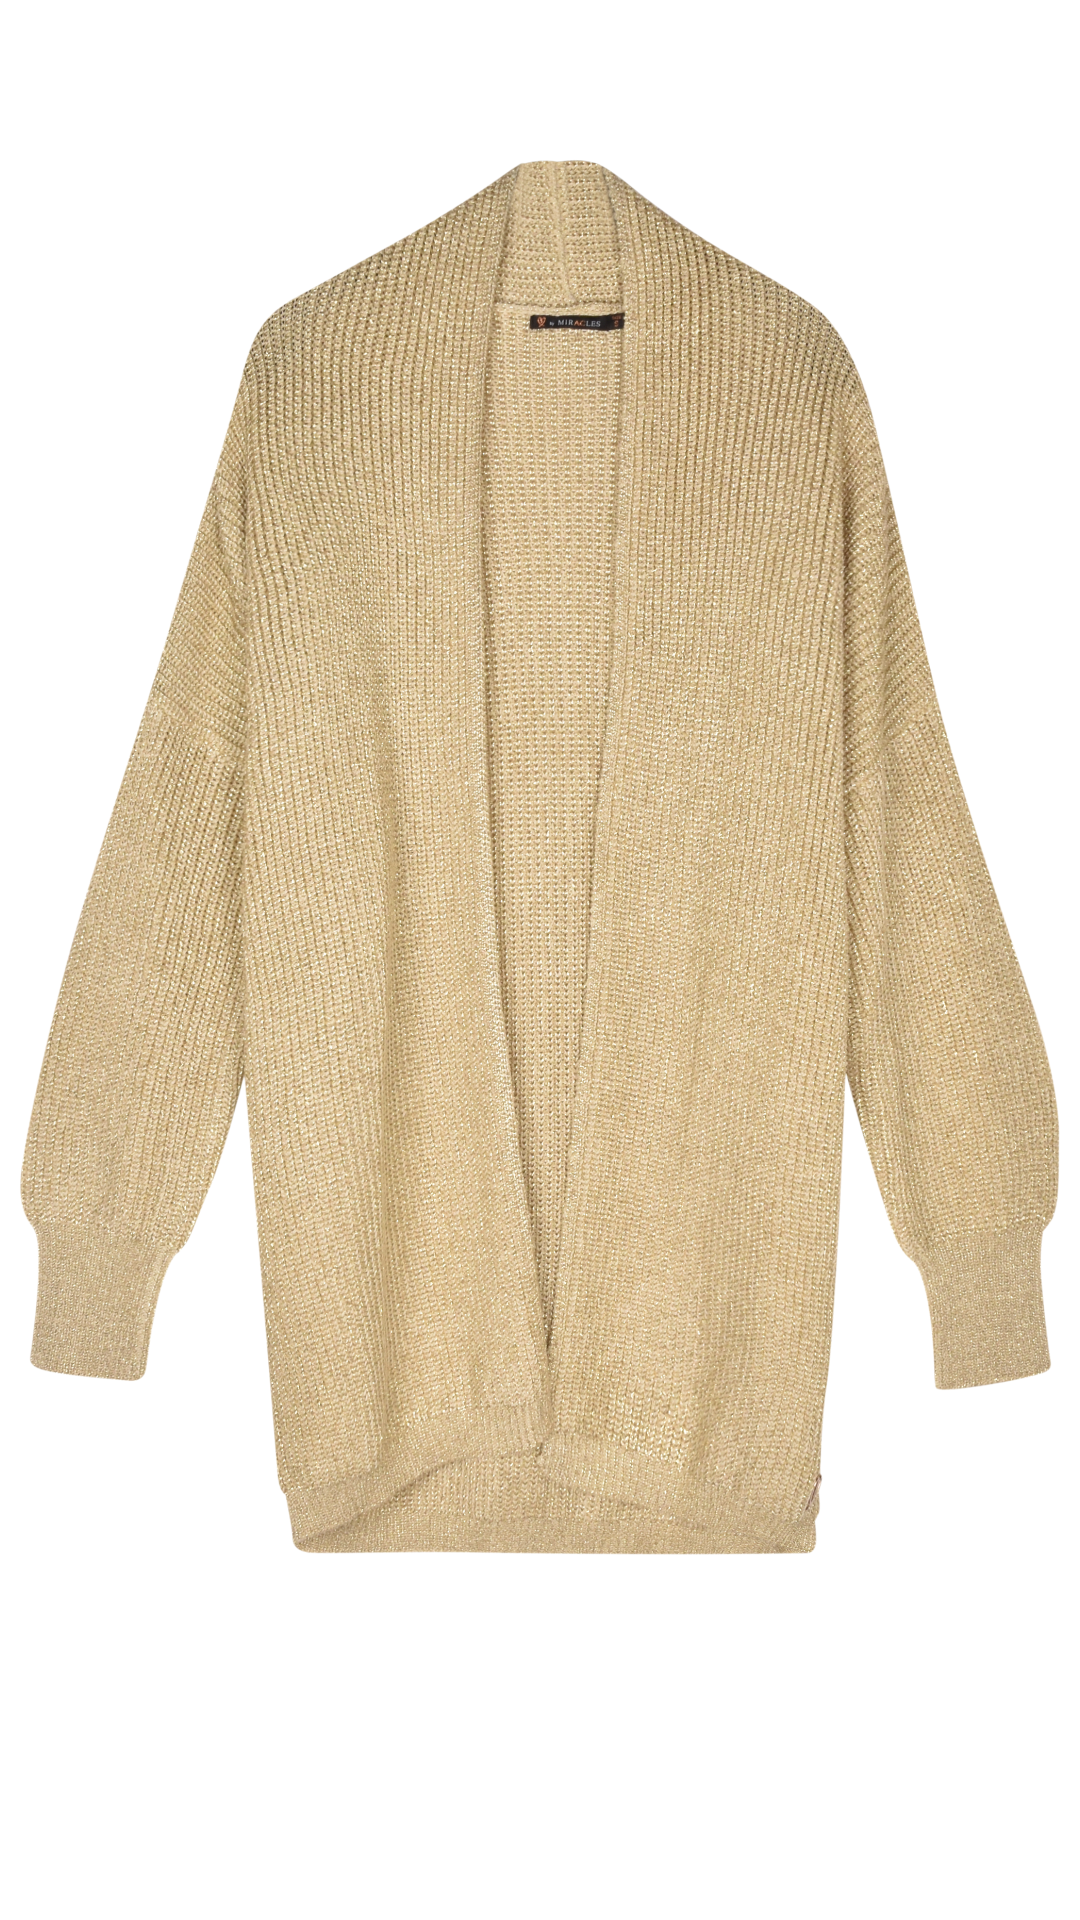 Loved by Miracles - Cardigan Vest Cleome Gold